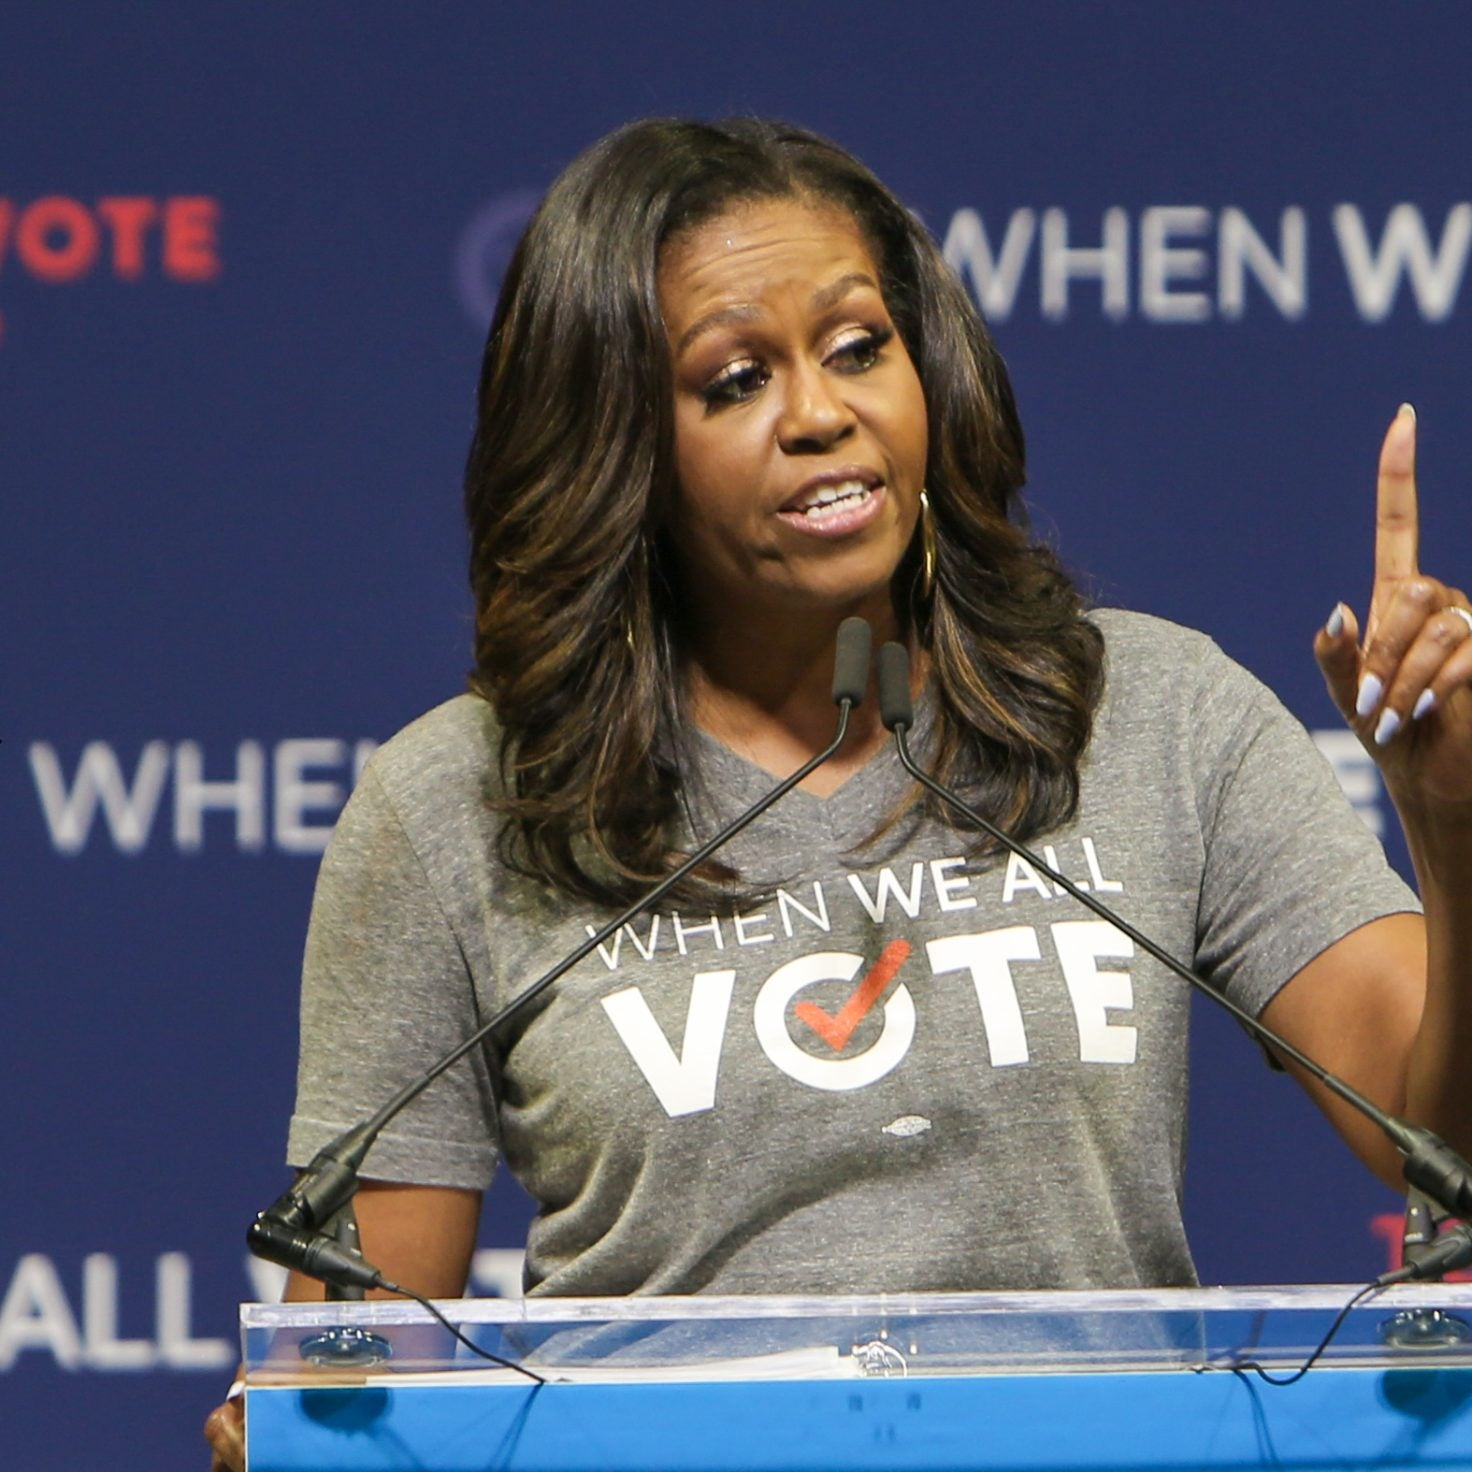 Michelle Obama Is Going To 'The D' To Help Get Out The Vote